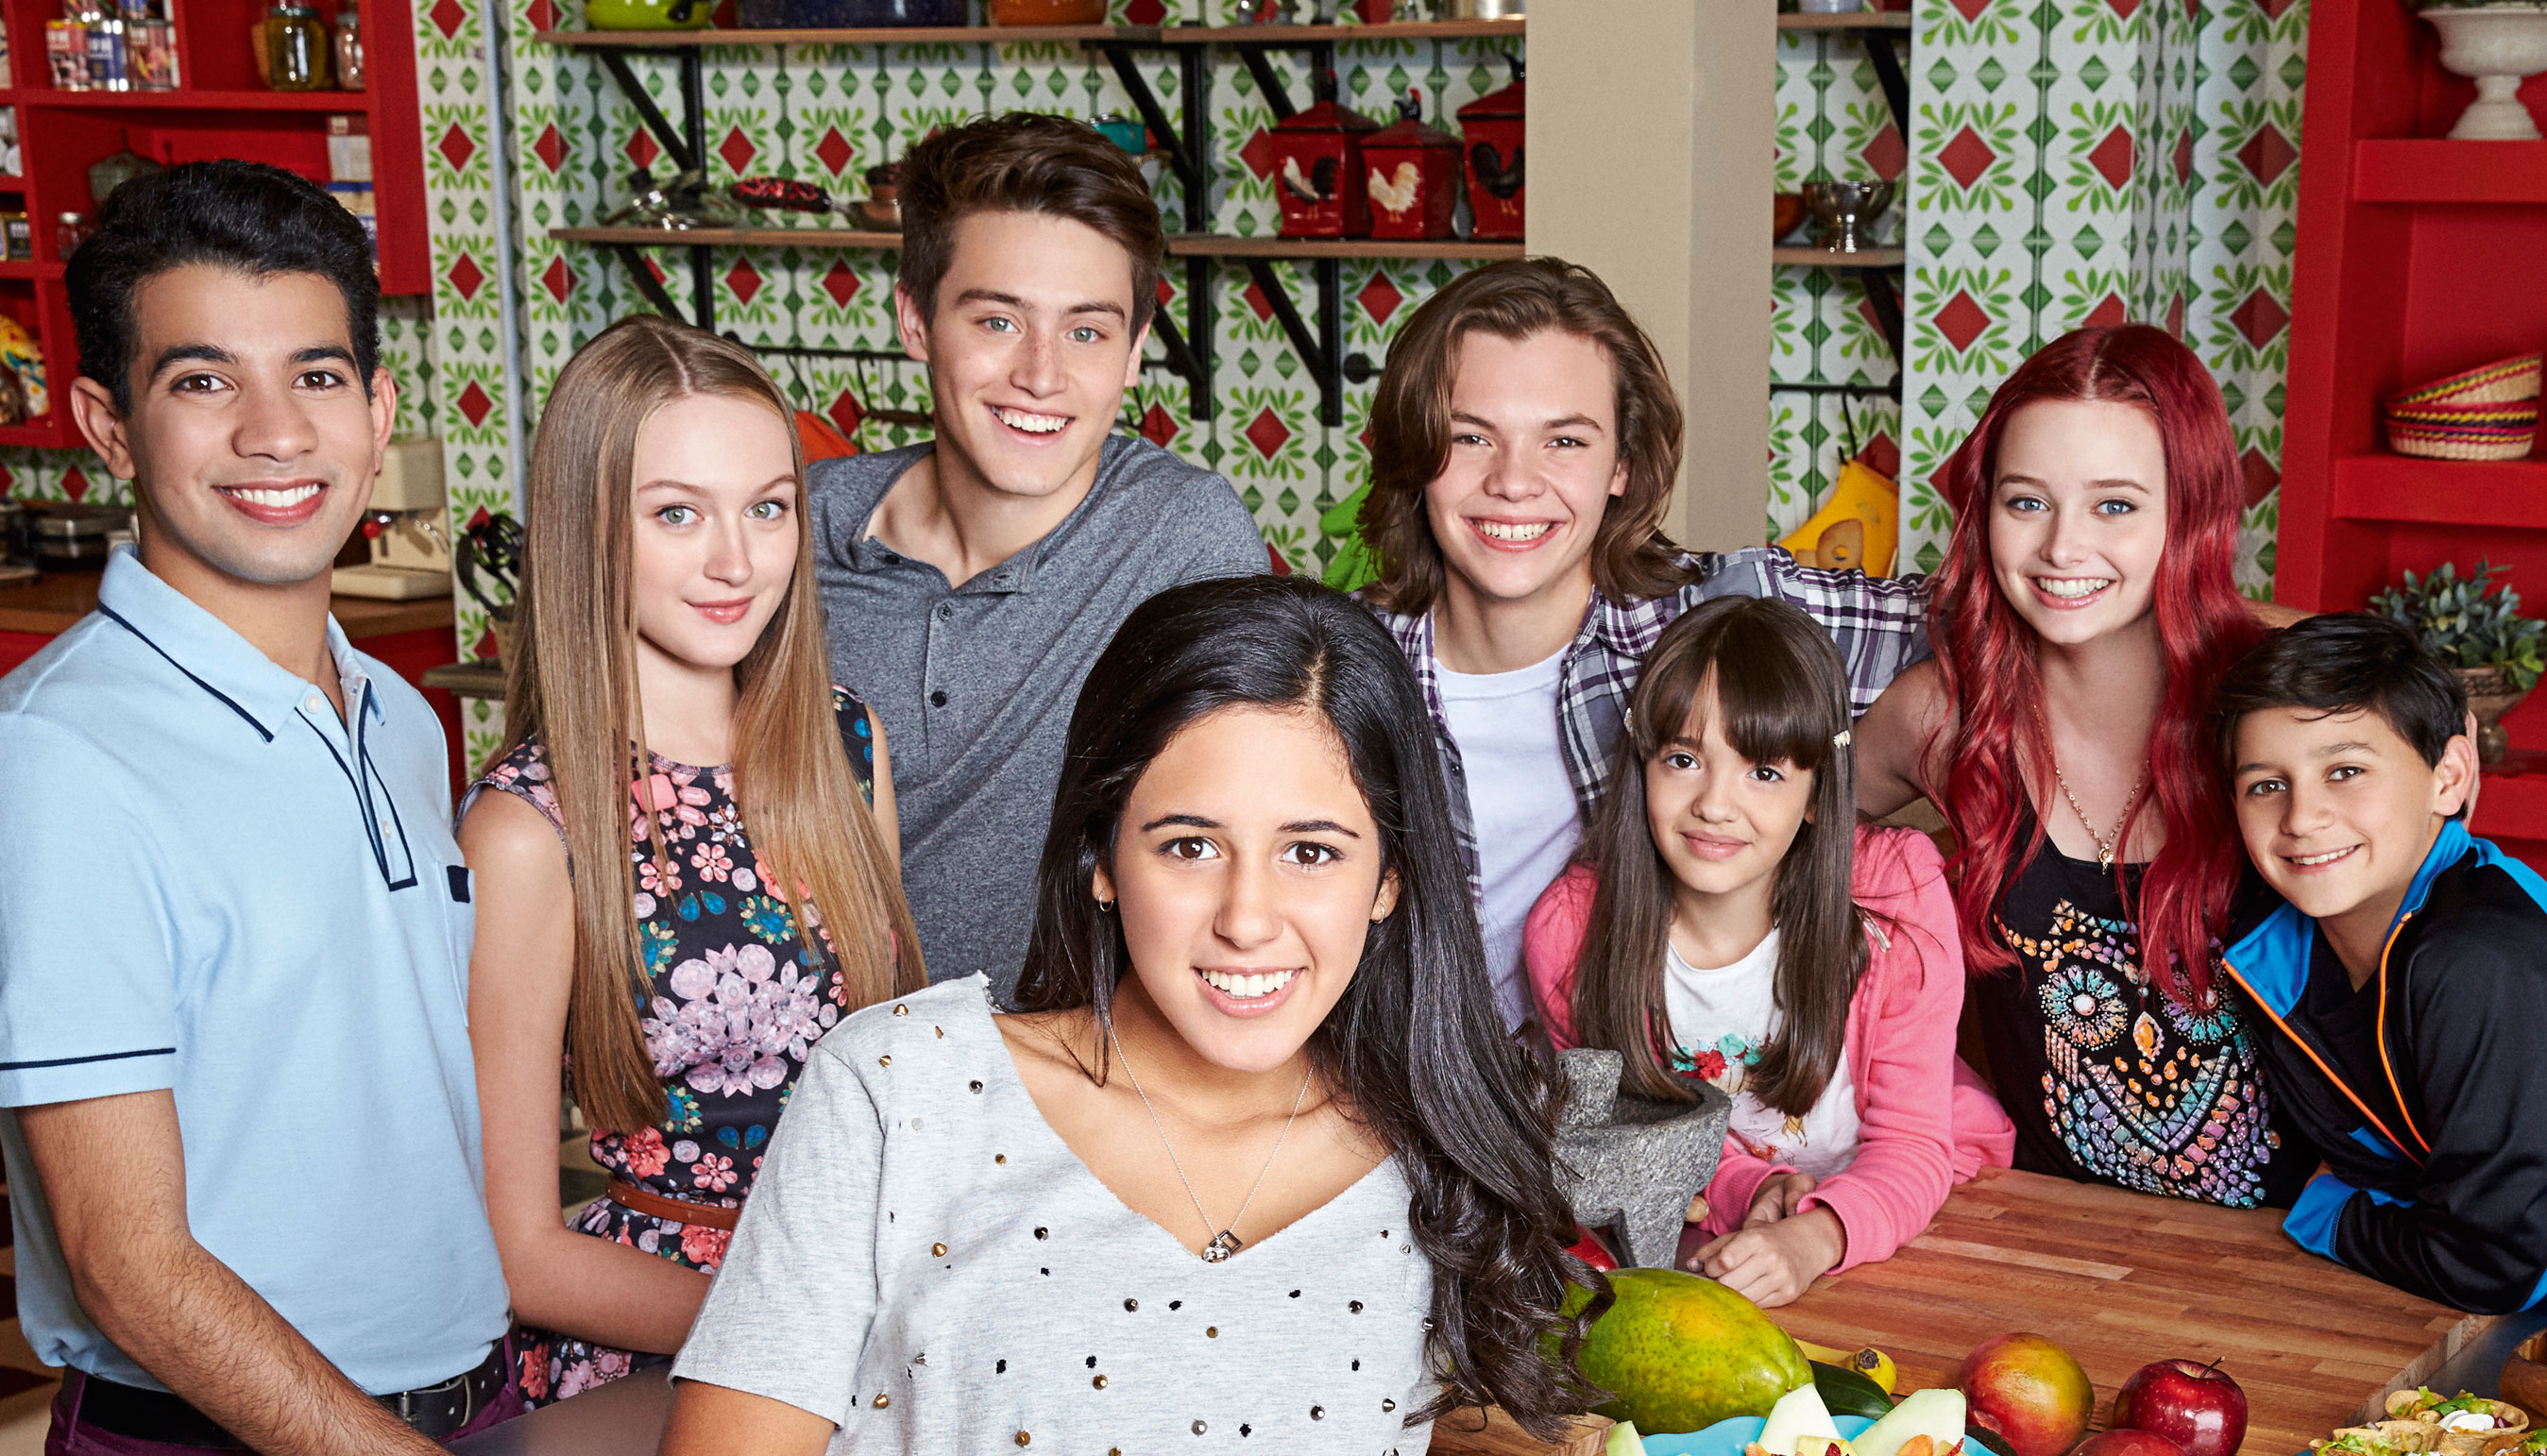 The Kitchen Cast talia in the kitchen' cancellednickelodeon, cast reacts